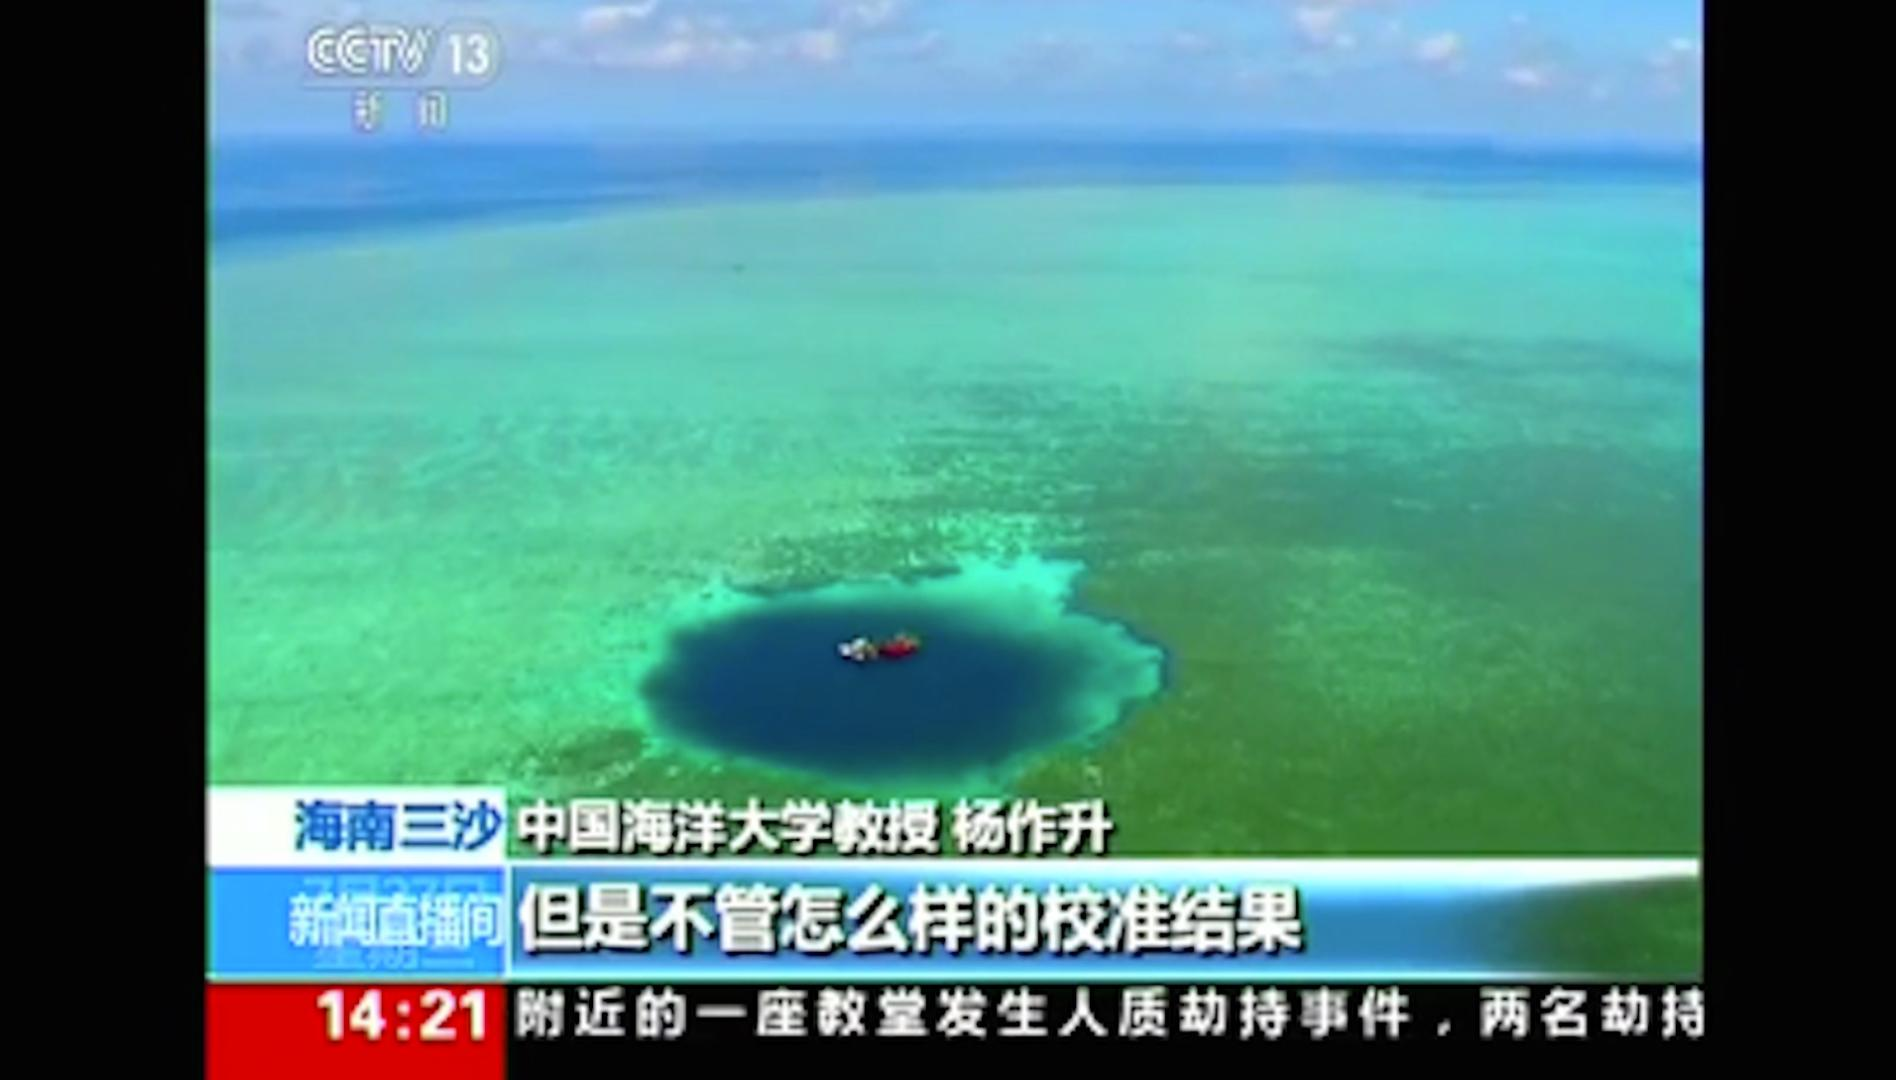 Researchers just discovered the world's deepest underwater sinkhole in the South China Sea